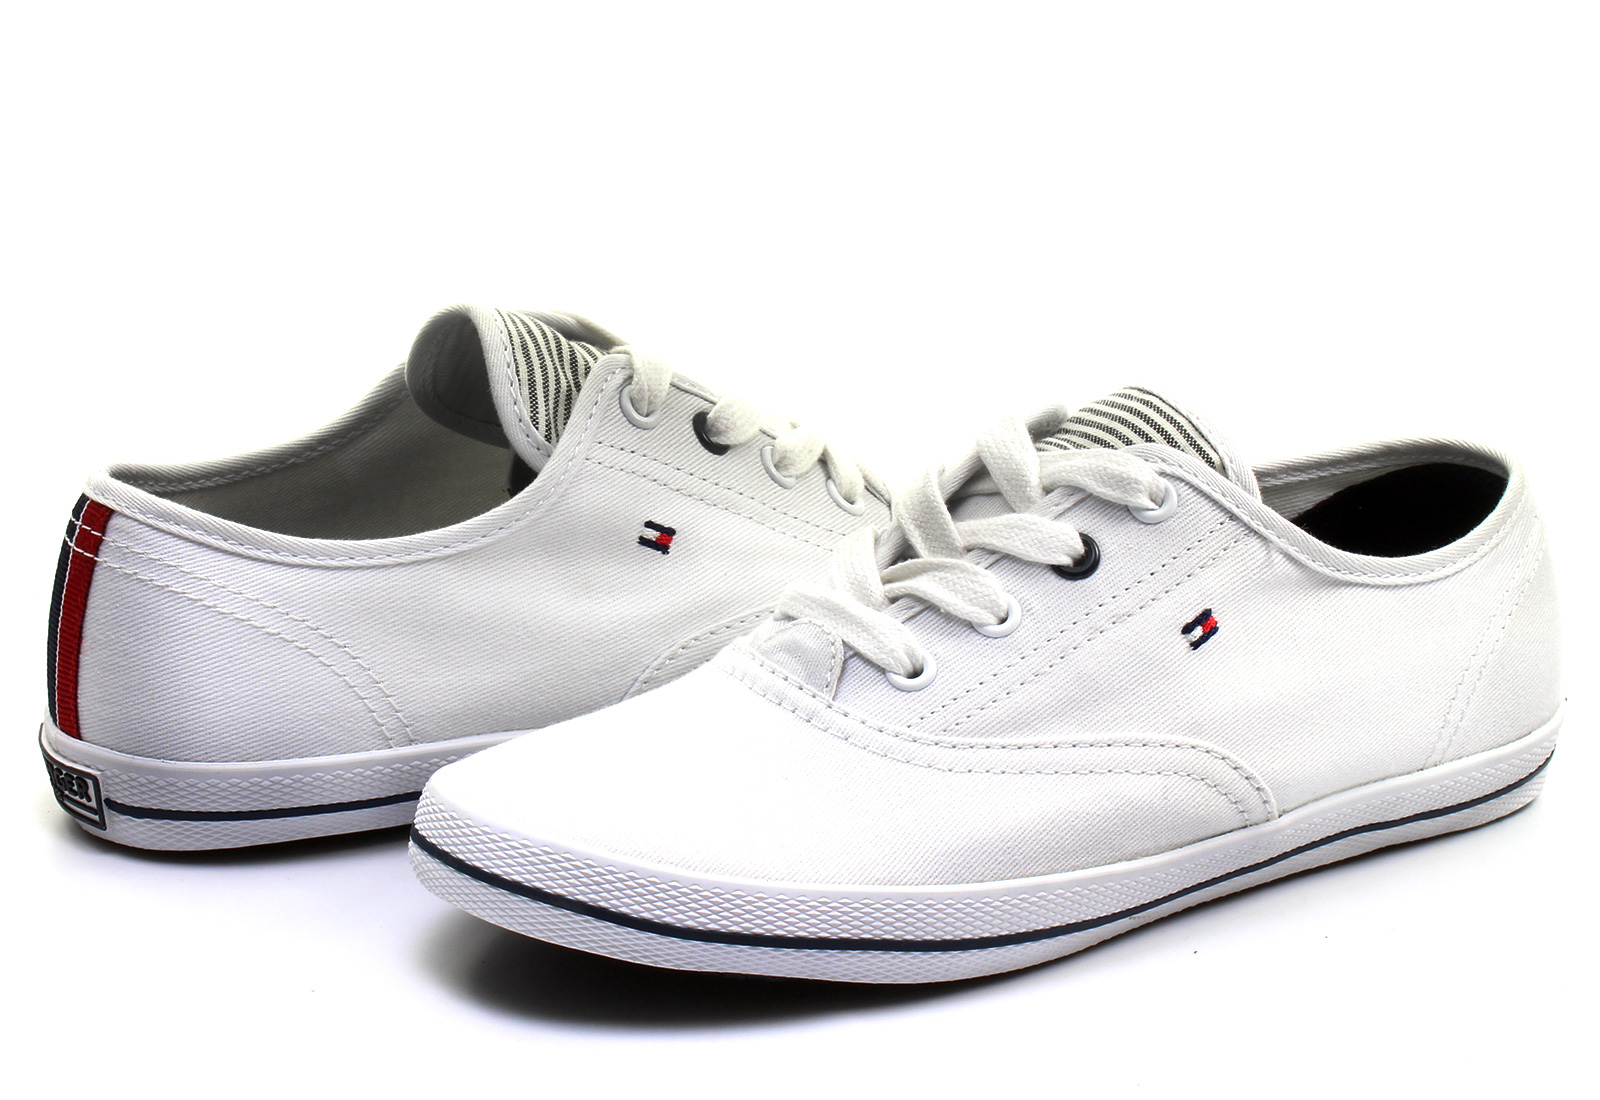 Tommy Hilfiger Sneakers - Victoria 1d - 14S-6883-100 - Office Shoes ... 642c4e9cdc